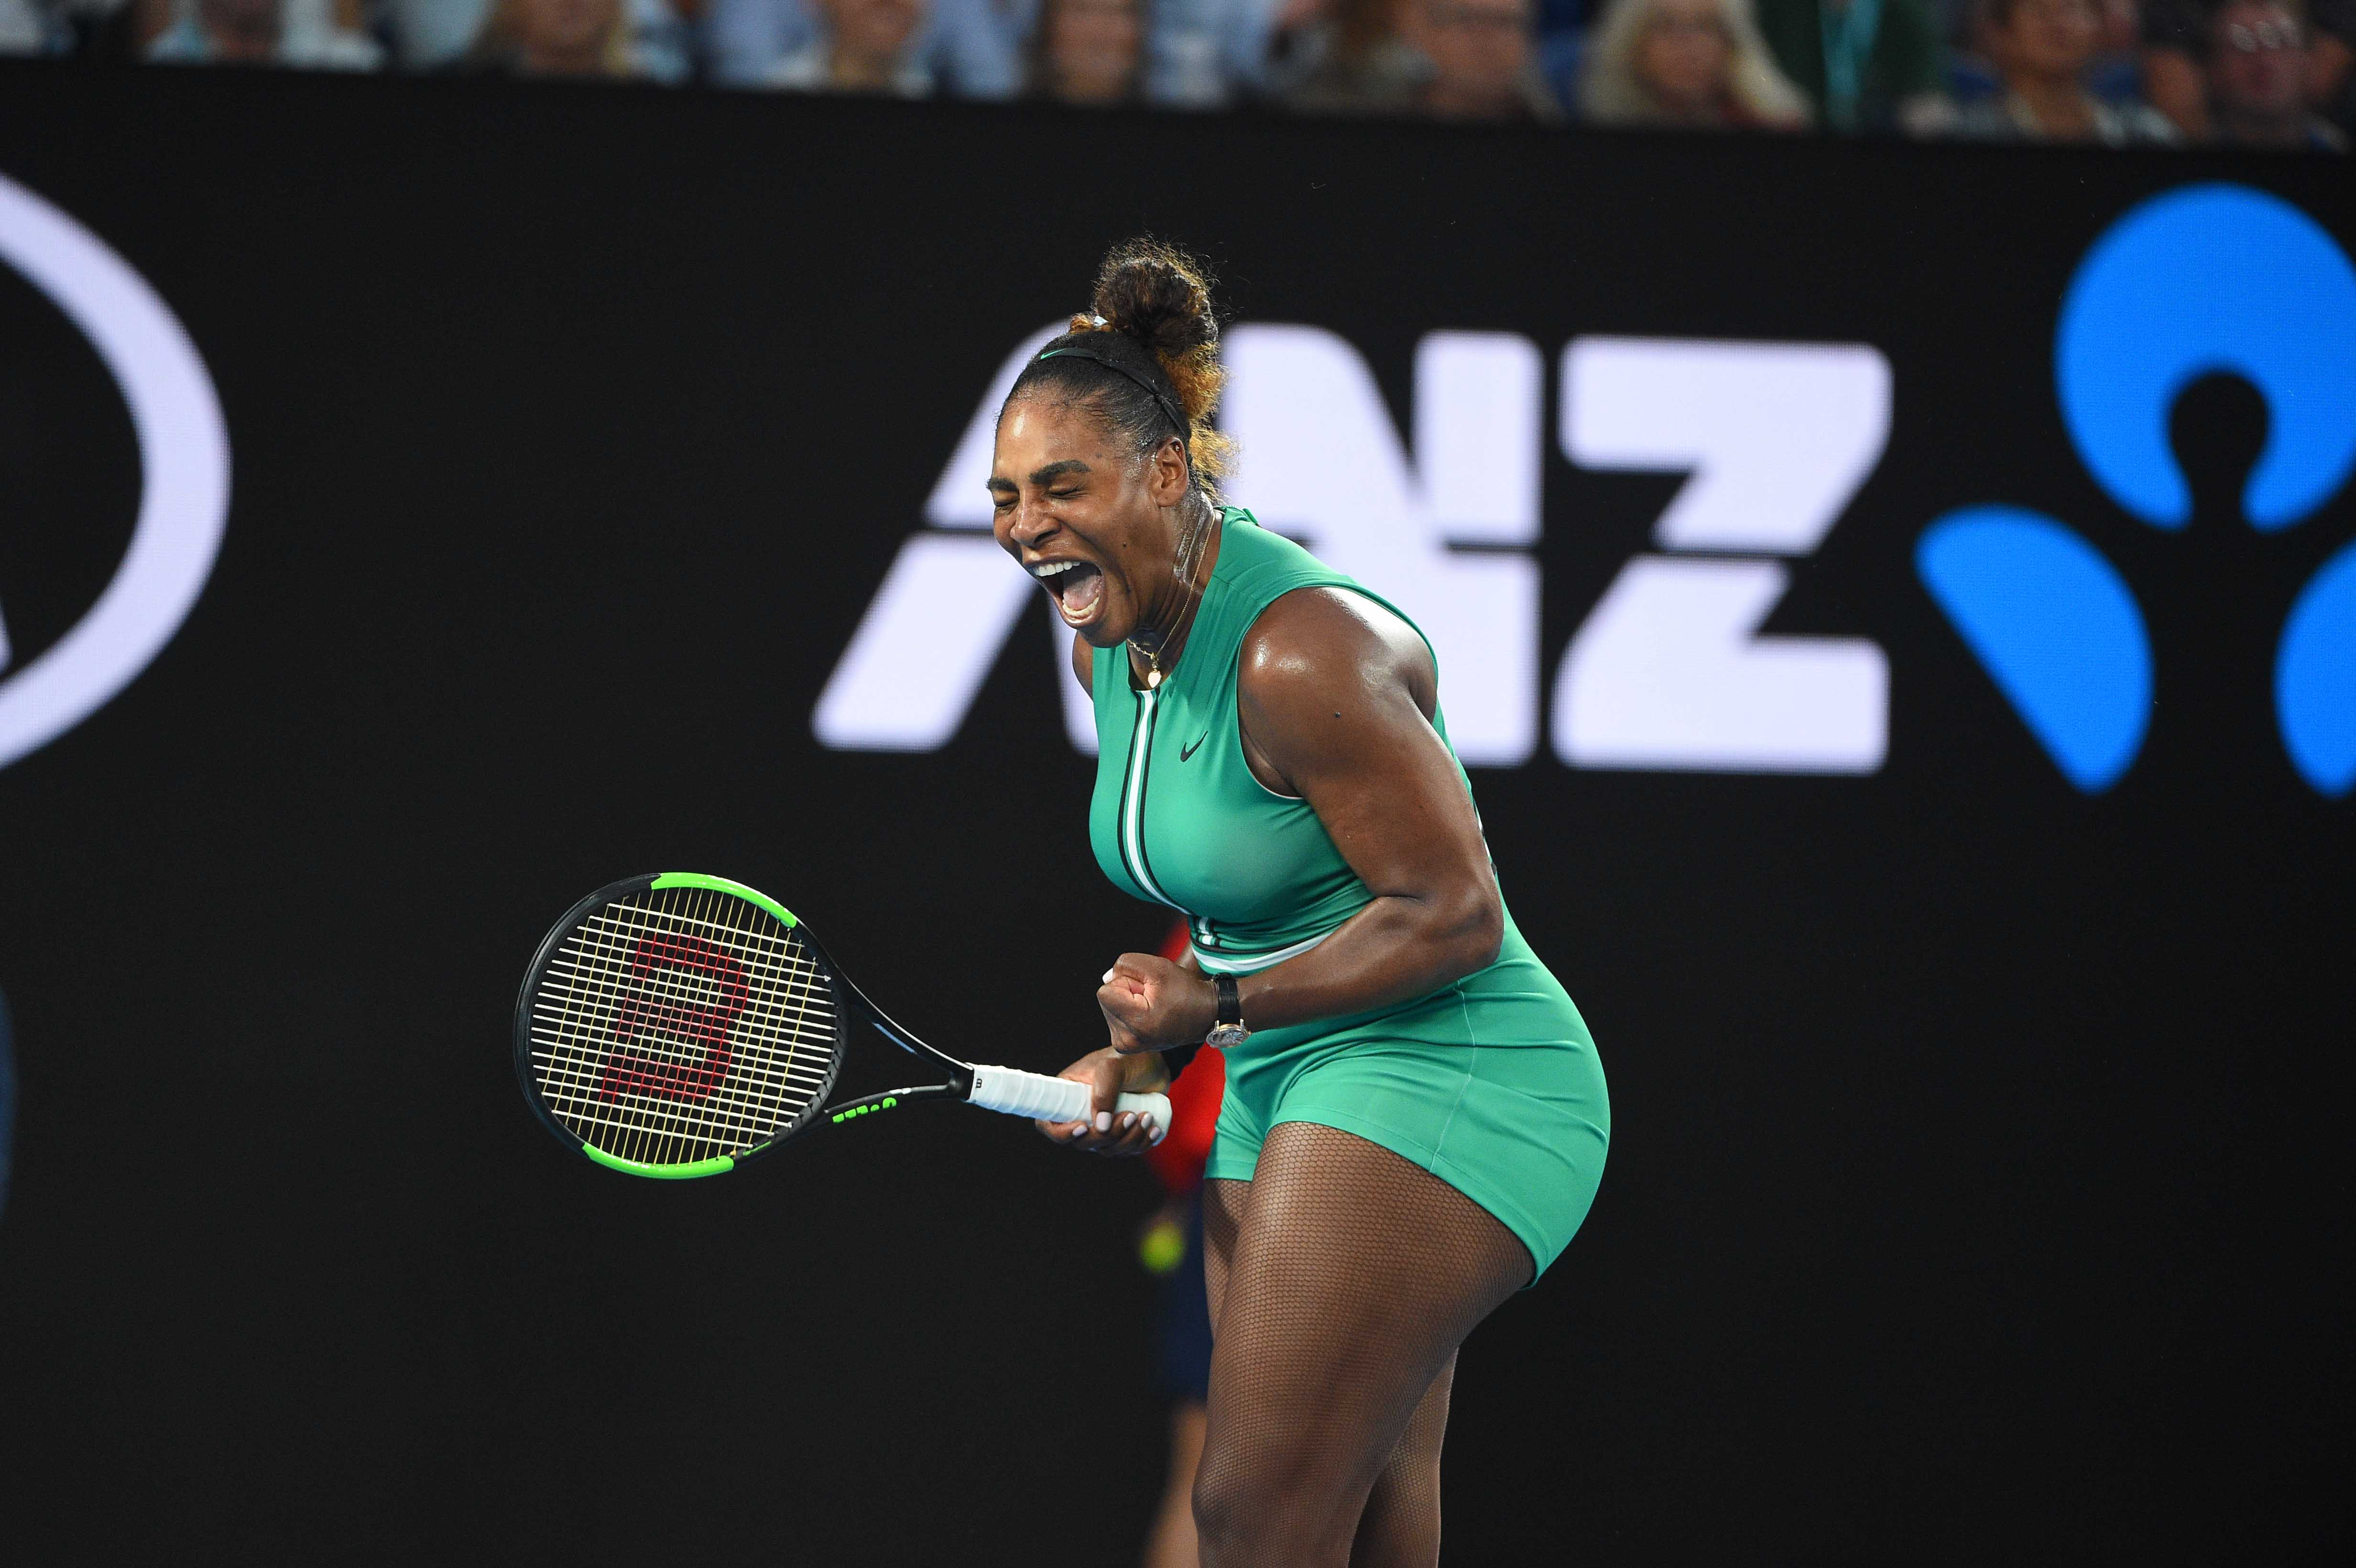 Serena Williams shouting during her match against Simona Halep at the Australian Open 2019